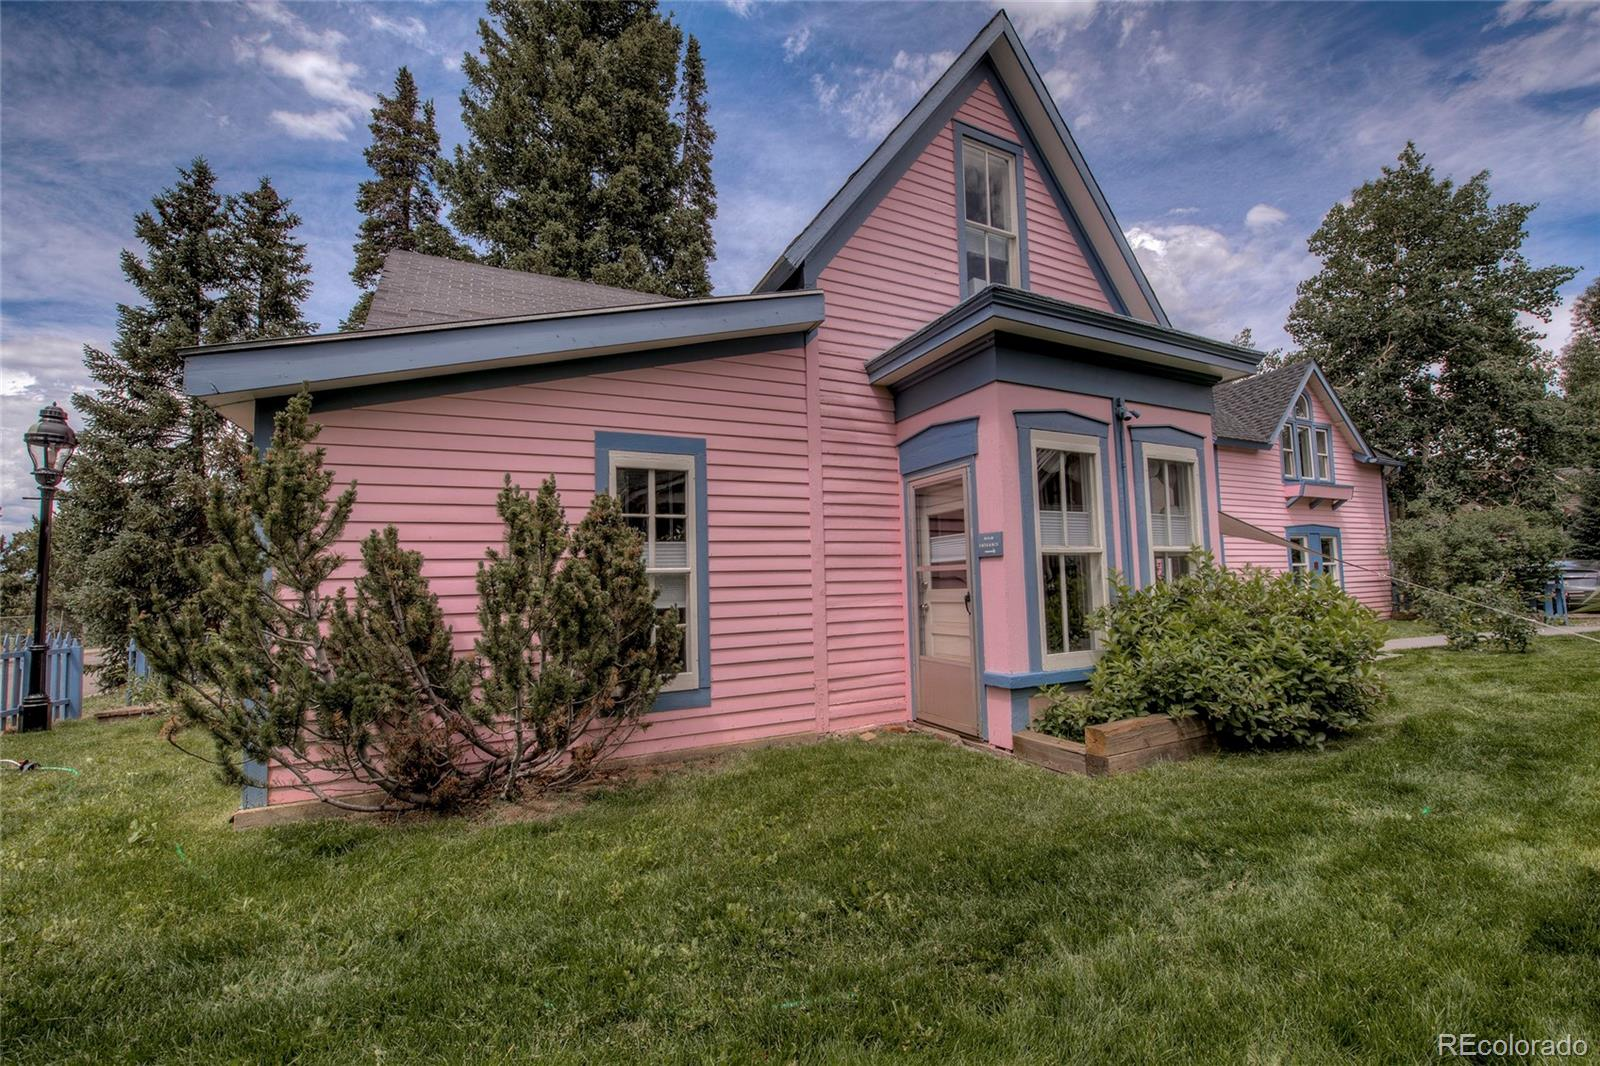 Rare opportunity to own the iconic and historic 'pink house' in Breckenridge. A mainstay of the community since 1900, now offered as a fully furnished, turnkey rental in the heart of downtown Breckenridge. Extensively remodeled historic former B&B that lives like a single family OR a single family with a mother-in-law suite OR a duplex. Choose your highest and best use at your convenience! The 2 bedroom side of the property was previously long term rented for $3000 a month and could get more income if you choose. 1031 Exchange eligible with tons of potential and versatility. Short Term Rental projections from a local and reputable management company show the potential of $155,000 Gross Income. Use one side while you rent the other side out. Rent out the whole thing while you're away. Or just keep it all for yourself! Serene setting walking distance to all things Breckenridge. Walk to Main Street Breckenridge, shuttle bus to slopes, Breckenridge Elementary school, sledding hill, dog park, and more! Enjoy an evening out on the town, or a day on the slopes, without needing your car. Fancy a mountain bike or road bike ride? Go out the back door to one of many beautifully challenging courses, for miles and miles all day.  Breathtaking and world class birding, golfing, tennis, photography, fishing, shopping, dining, live music, hiking, and of course skiing and snowboarding are all waiting for you, and this home is in the middle of it all. With a big fenced yard, cool evenings under the stars await you and your guests for fun around the campfire. This house has been lovingly restored and updated to modern tastes and standards, and is awaiting your personal touches. When you arrive in the mountains, and make it to this home to Breckenridge, you will be amazed at the endless opportunities to make timeless memories with your loved ones.